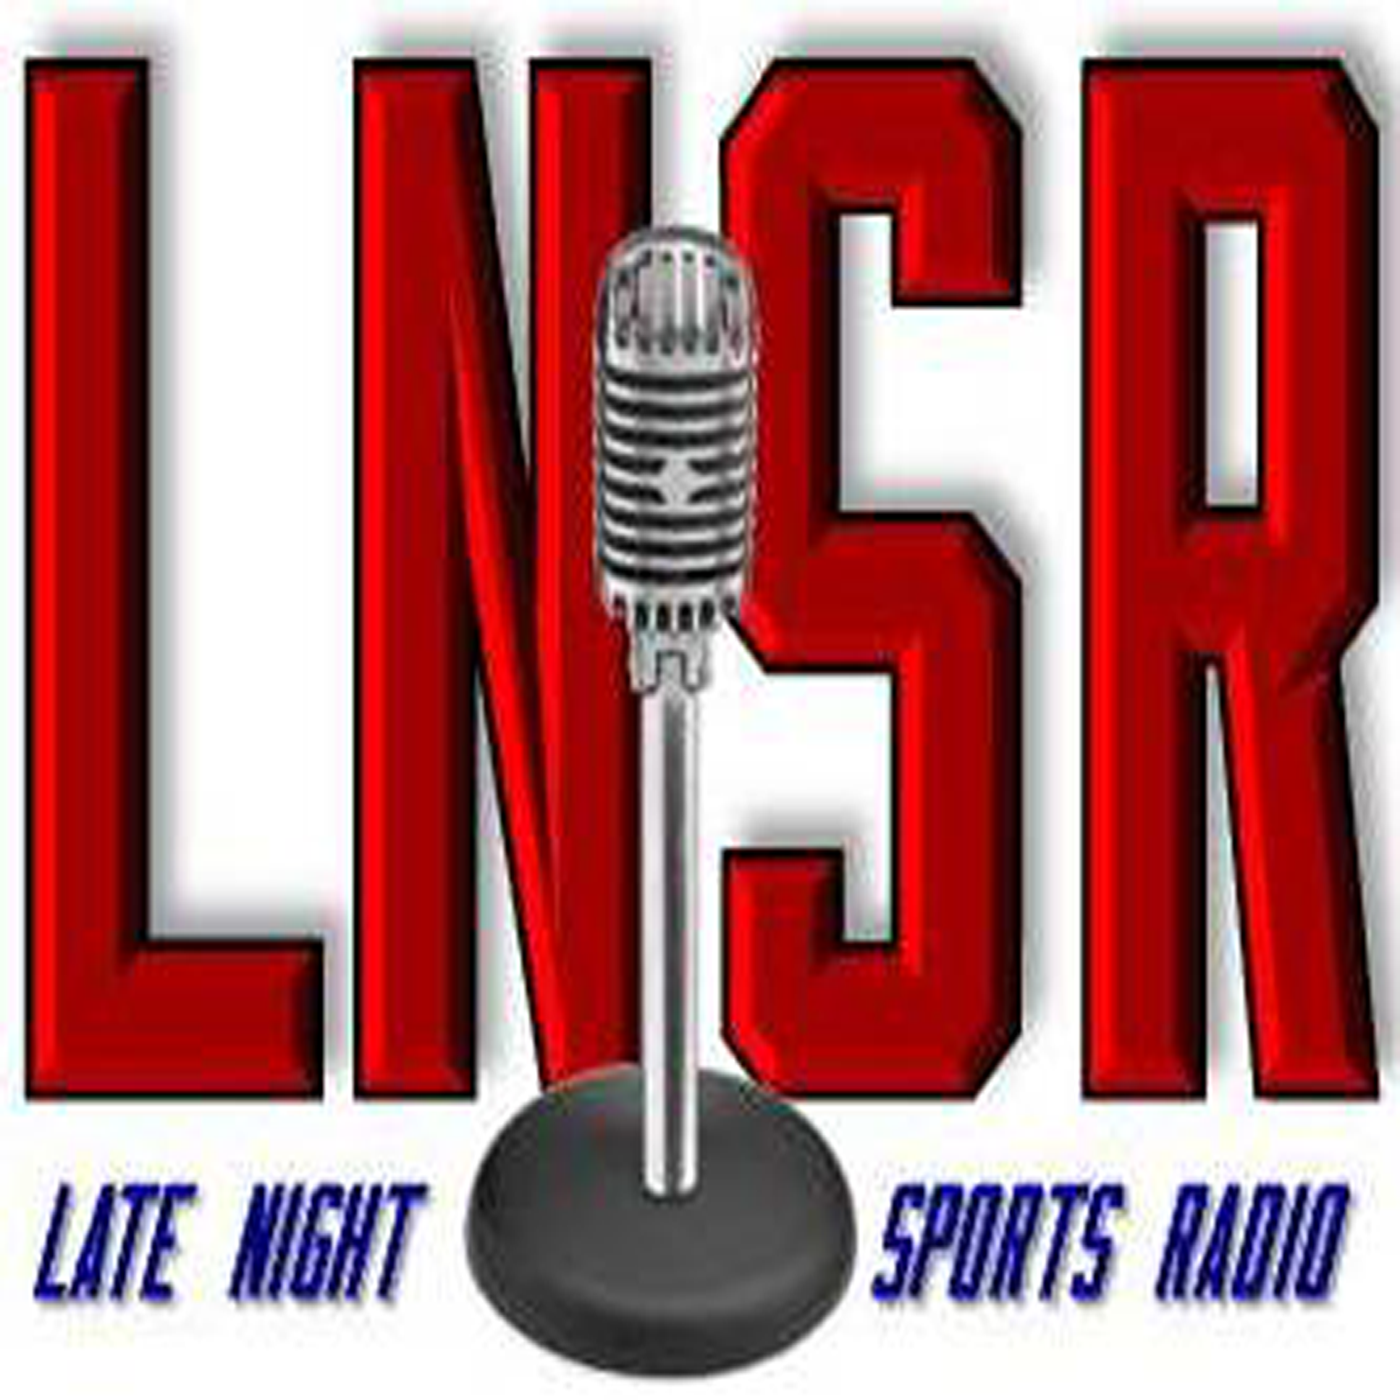 Late Night Sports Radio